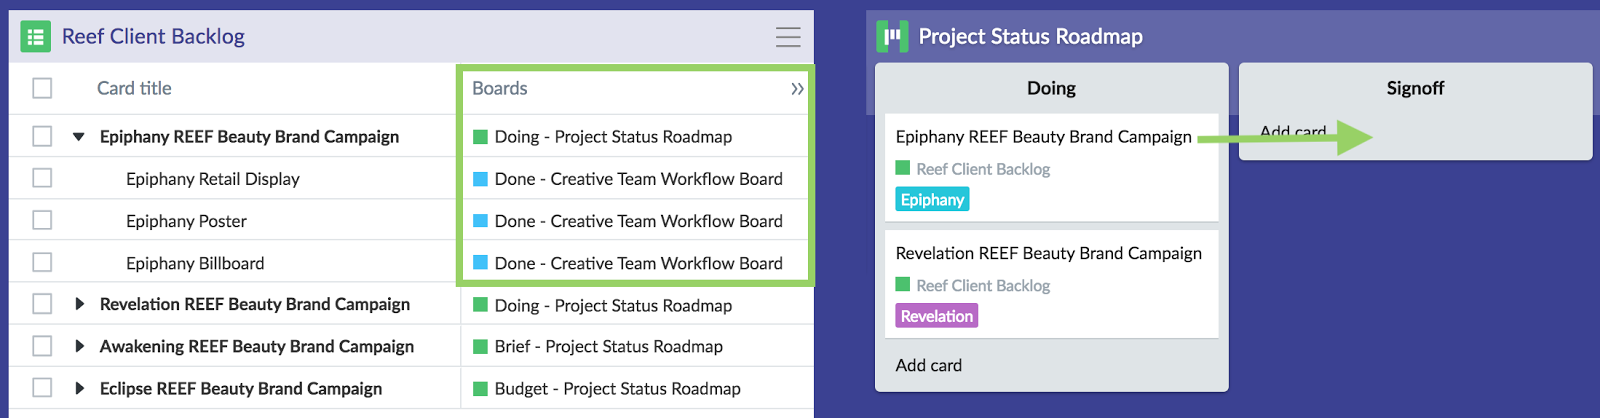 Monitor child backlog item status from the backlog so you know when to move the parent items on their board